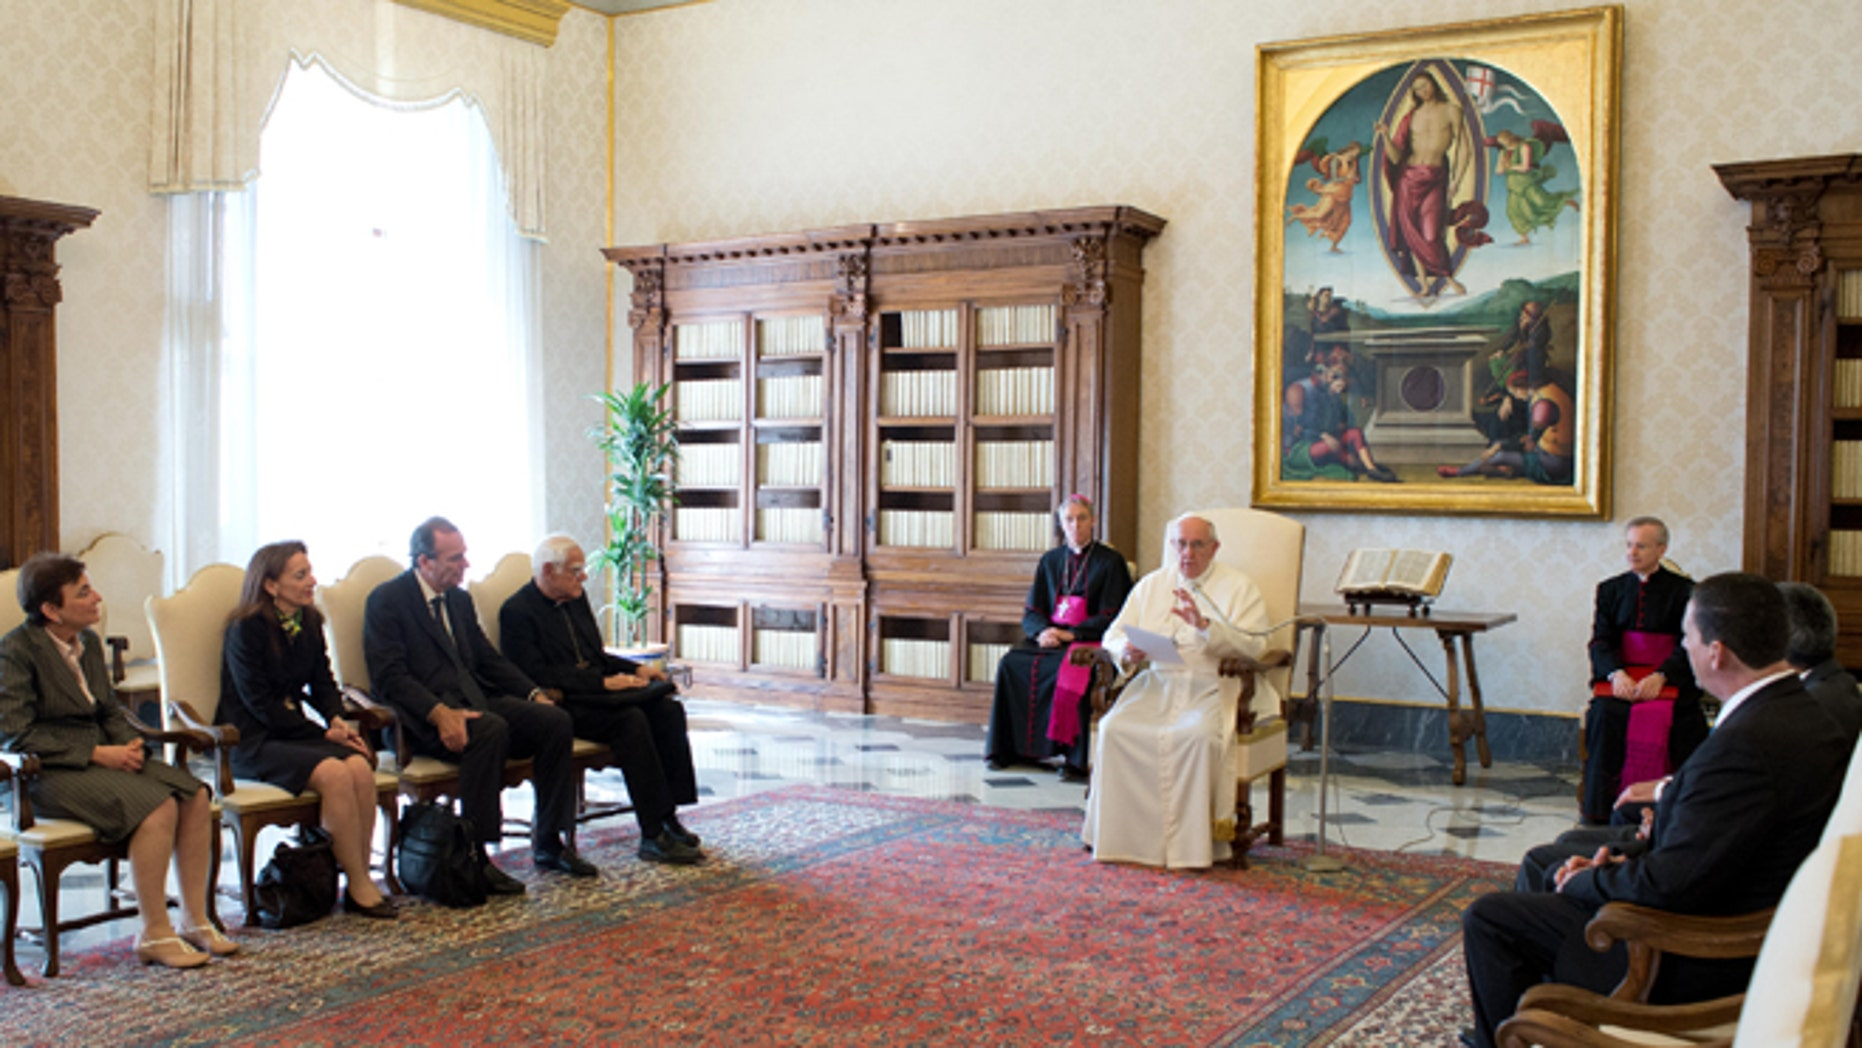 """In this photo released by Vatican newspaper L'Osservatore Romano, Pope Francis meets members of the International Catholic Child Bureau, at the Vatican Friday, April 11, 2014. Pope Francis asked for forgiveness Friday from people who were sexually abused by priests, and vowed that there will be no going back in the church's fight to protect children. Francis made the off-the-cuff remarks after coming under criticism from victims' advocacy groups for a perceived lack of attention to the problem and ongoing demands that he sanction bishops who covered up for pedophiles. In his remarks to members of the International Catholic Child Bureau, a French Catholic network of organizations that protects children's rights, Francis said he felt """"called to take it upon myself"""" and """"ask forgiveness"""" for the evil that some priests had committed against children. """"The church is aware of this damage,"""" he was quoted as saying by Vatican Radio.  (AP Photo/L'Osservatore Romano)"""